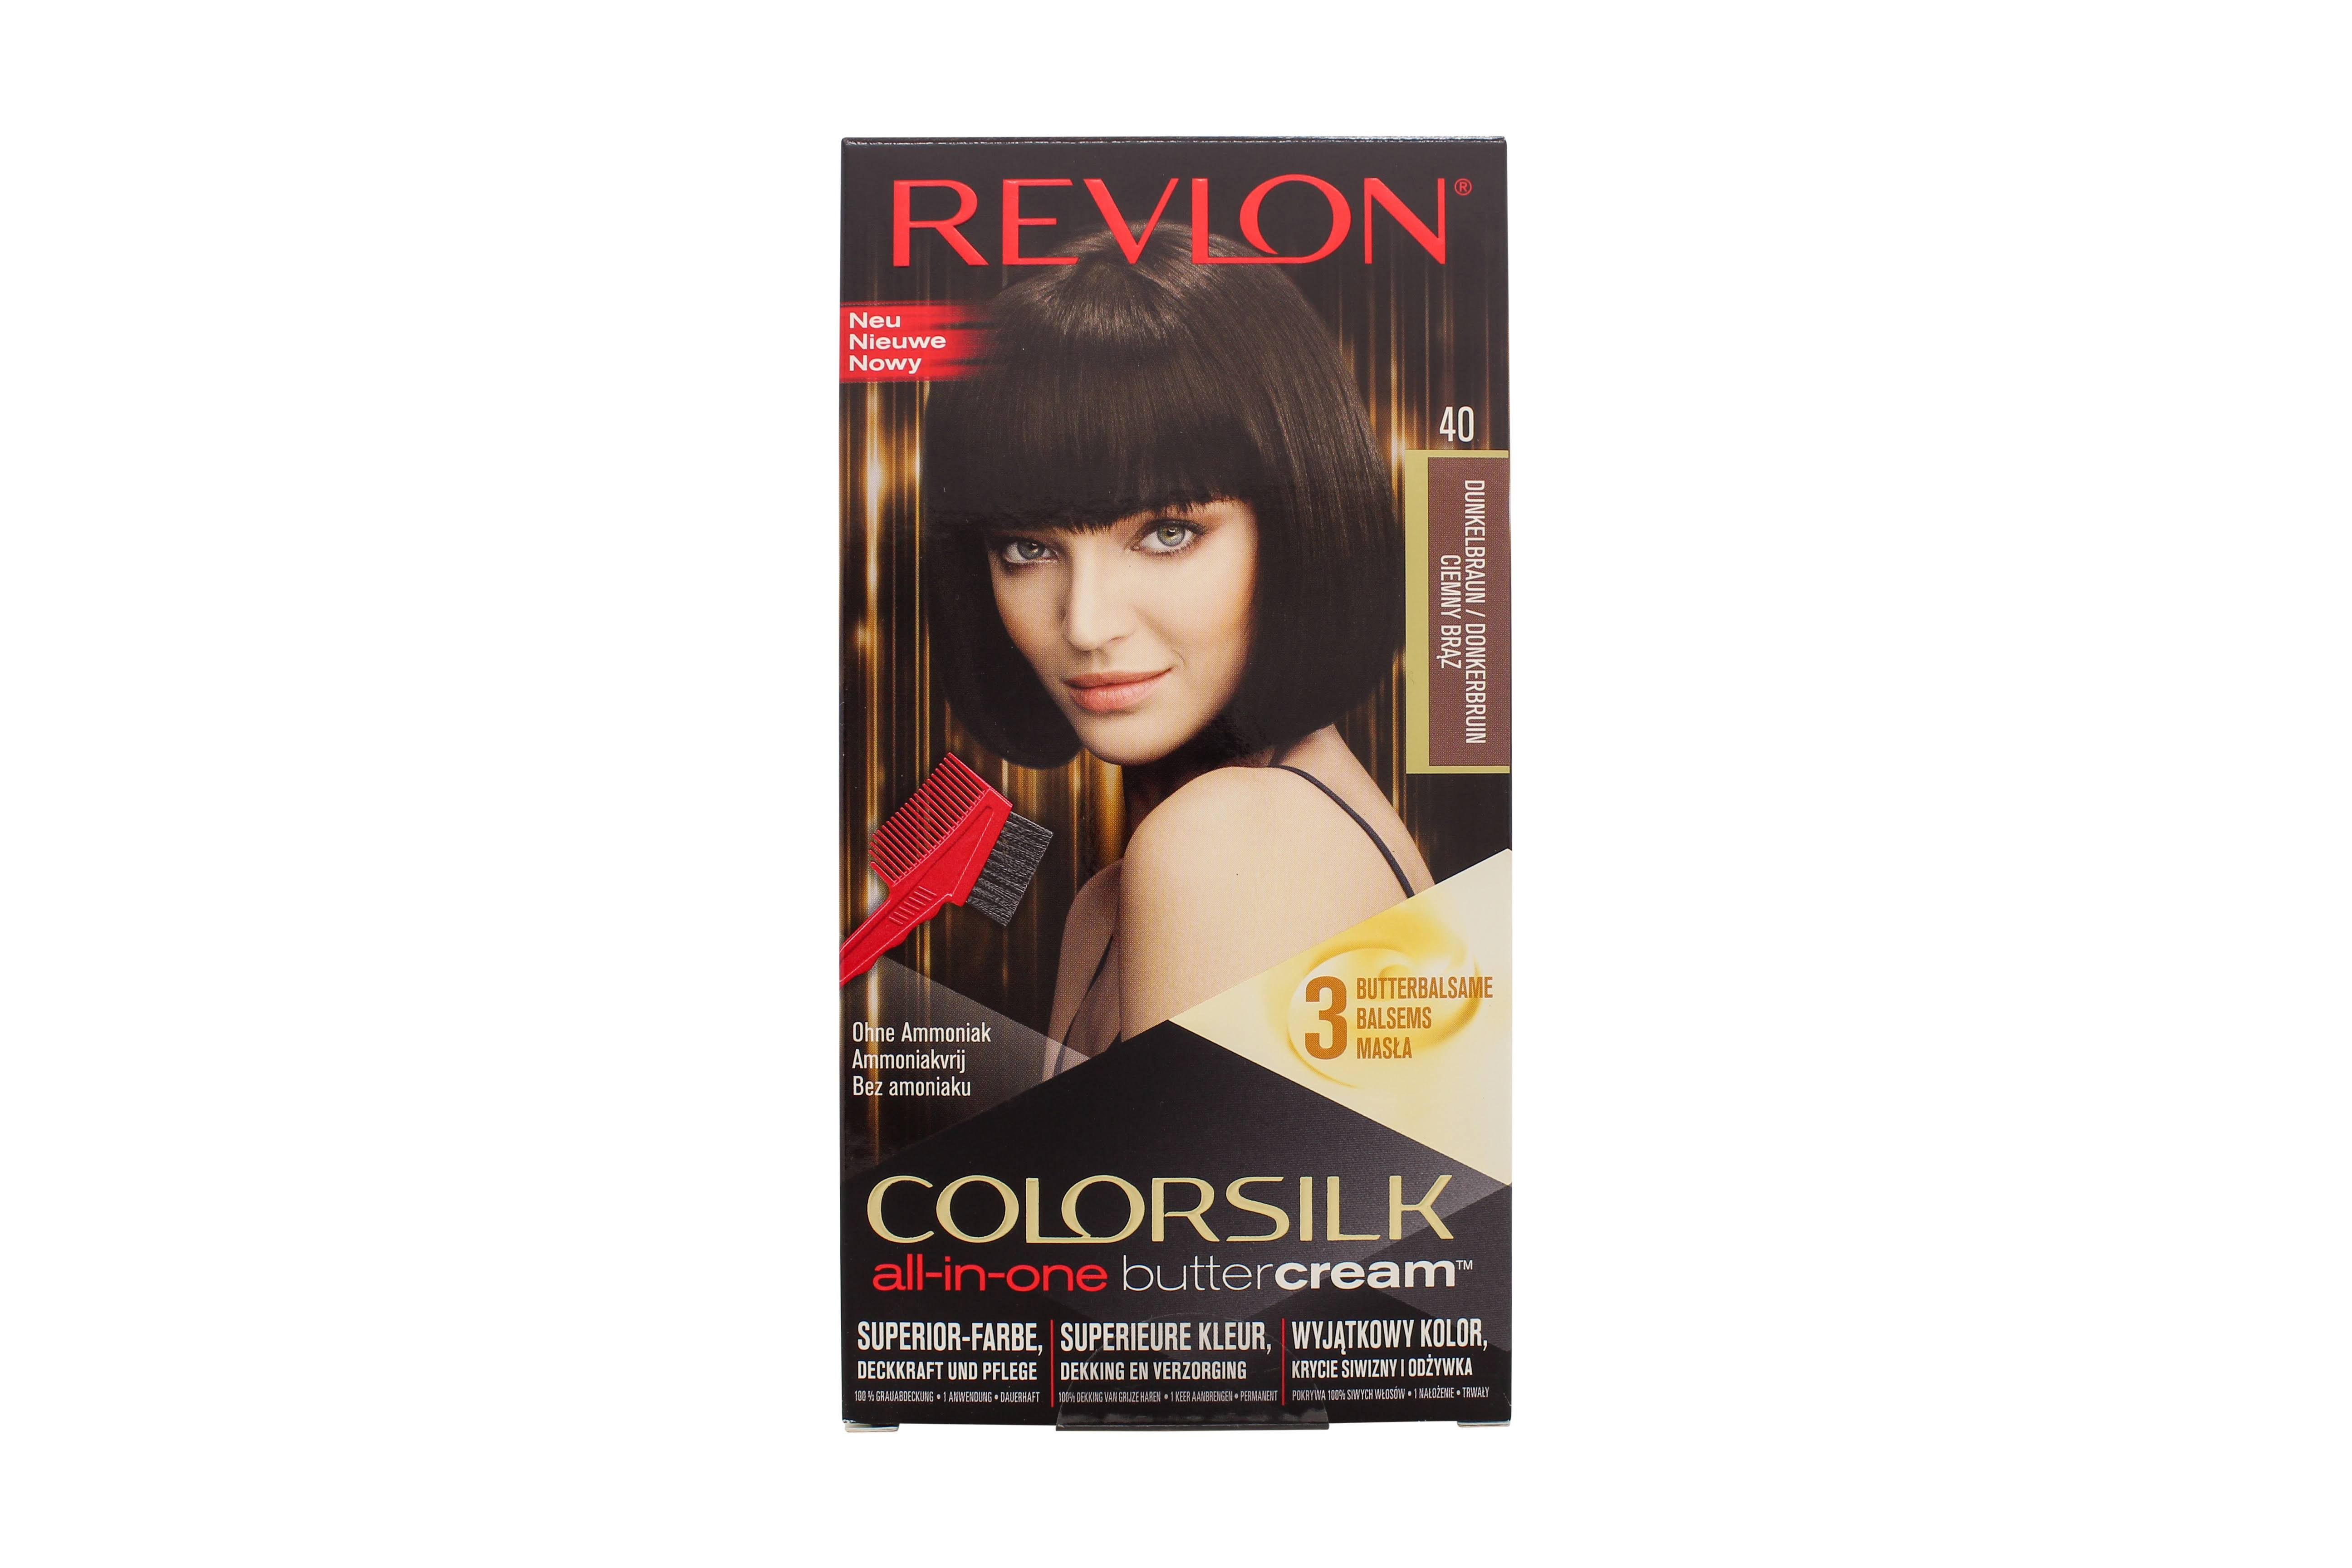 Revlon ColorSilk ButterCream Hair Color - 40/30N Dark Brown